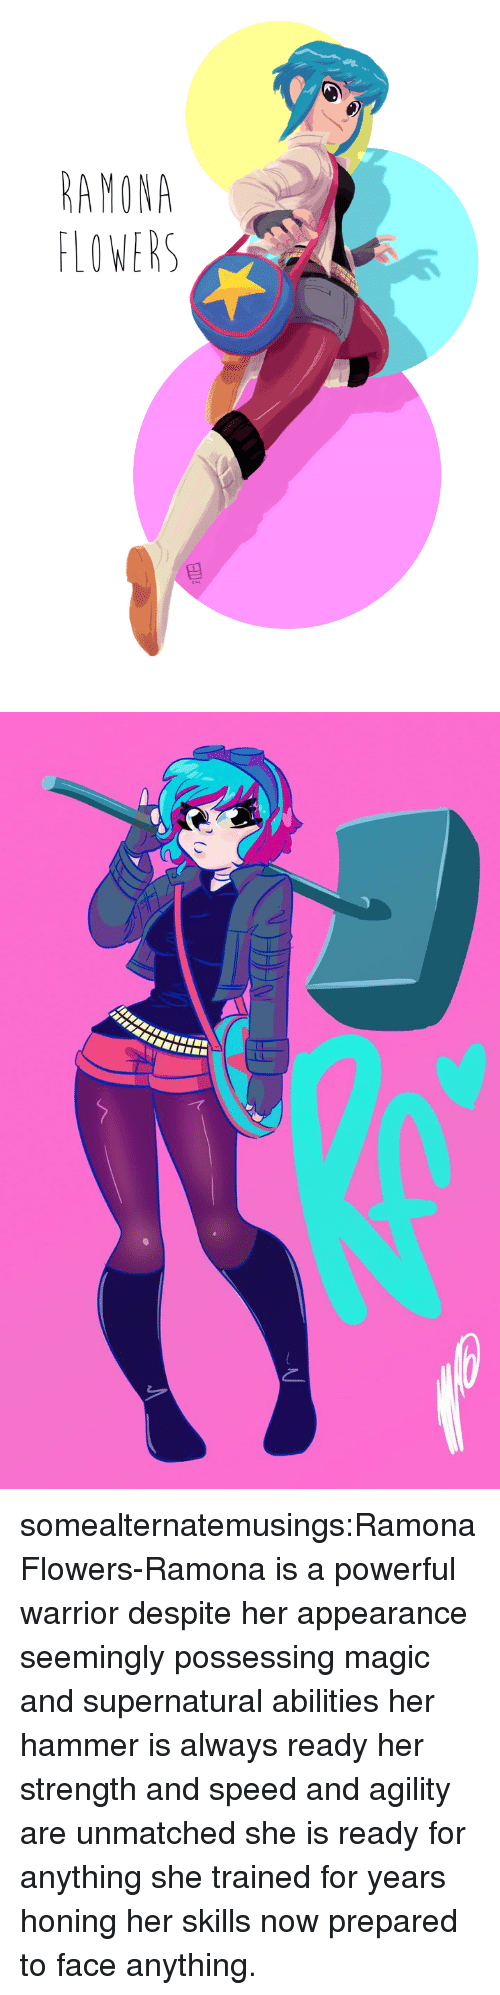 Target, Tumblr, and Blog: AMONA  LOWERS somealternatemusings:Ramona Flowers-Ramona is a powerful warrior despite her appearance seemingly possessing magic and supernatural abilities her hammer is always ready her strength and speed and agility are unmatched she is ready for anything she trained for years honing her skills now prepared to face anything.